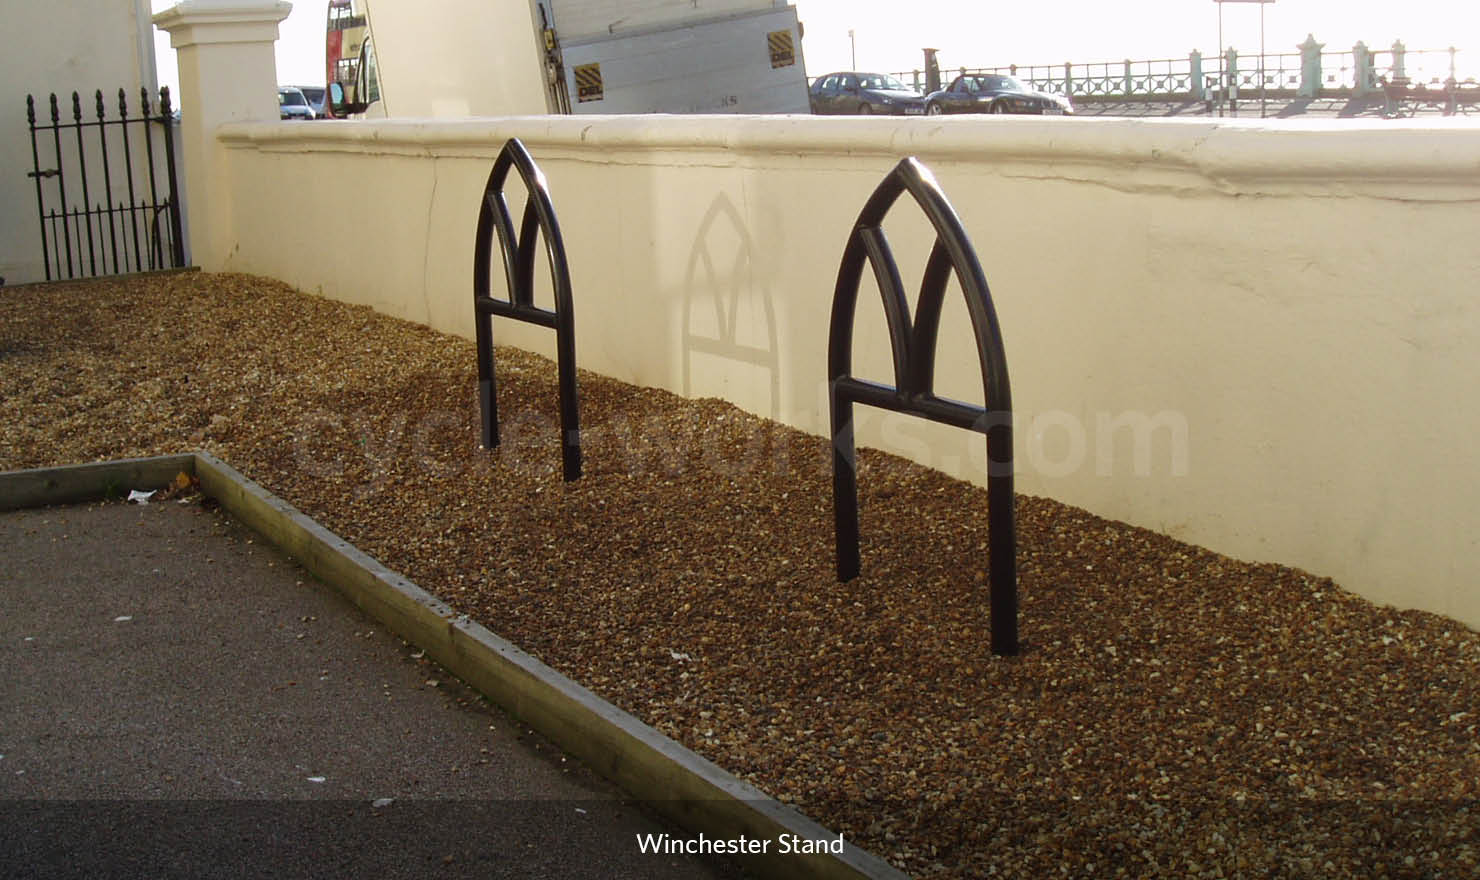 Winchester Cycle Stand